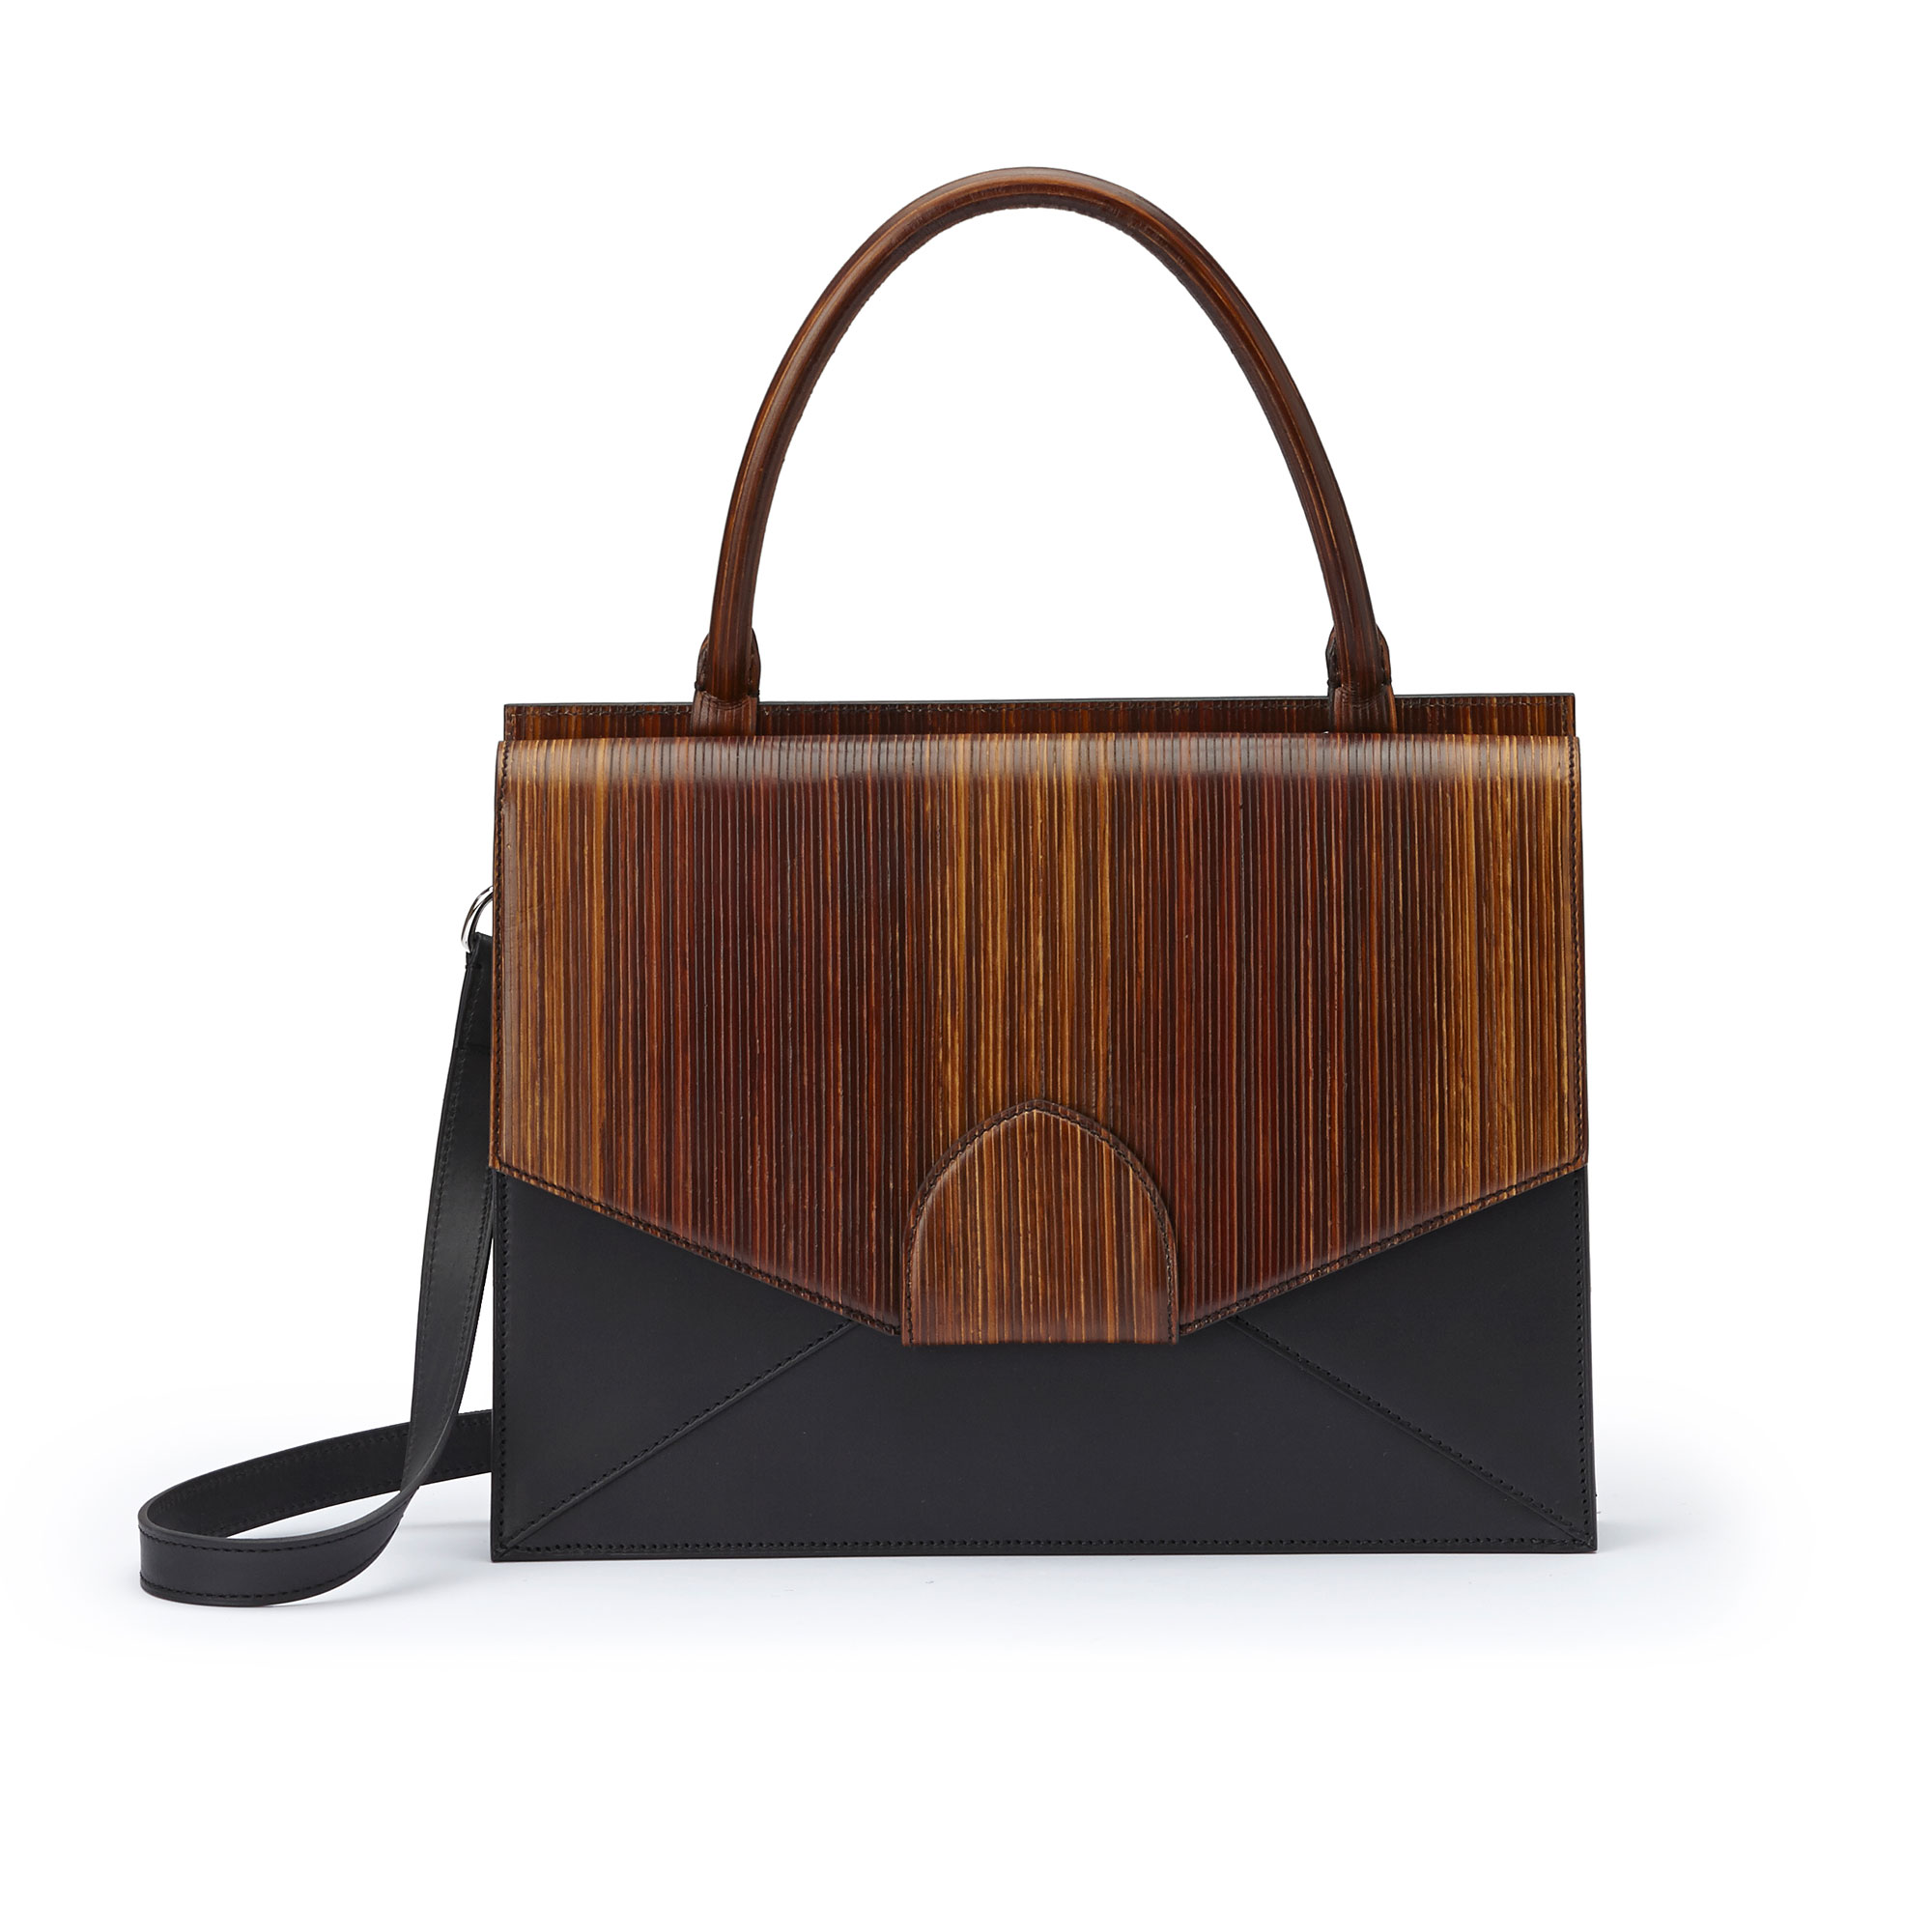 The black and brown wood leather, french calf Dafne bag by Bertoni 1949 01